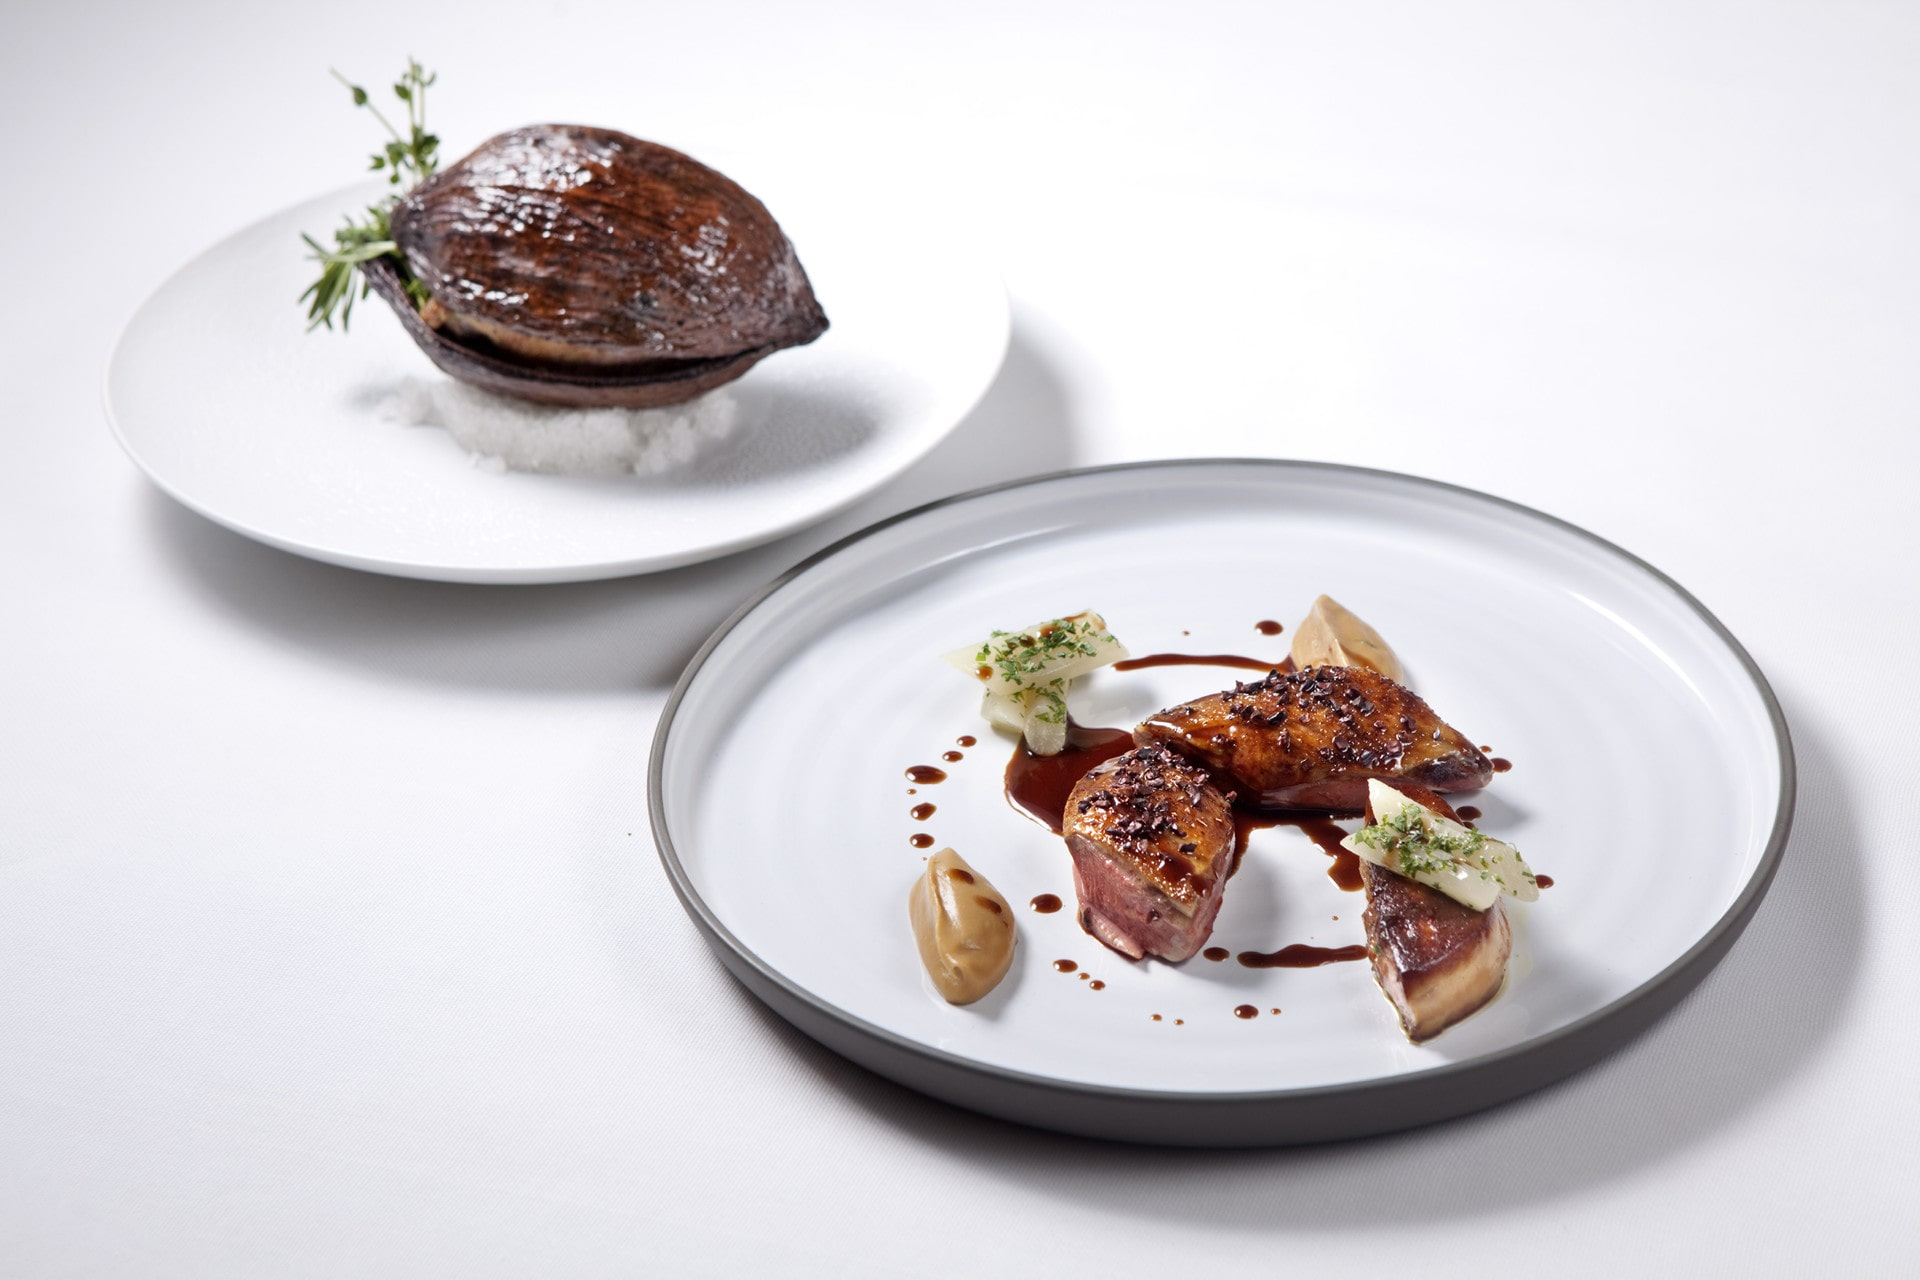 Caprice's Racan pigeon cooked in a cocoa pod (Photo: Courtesy of Caprice)